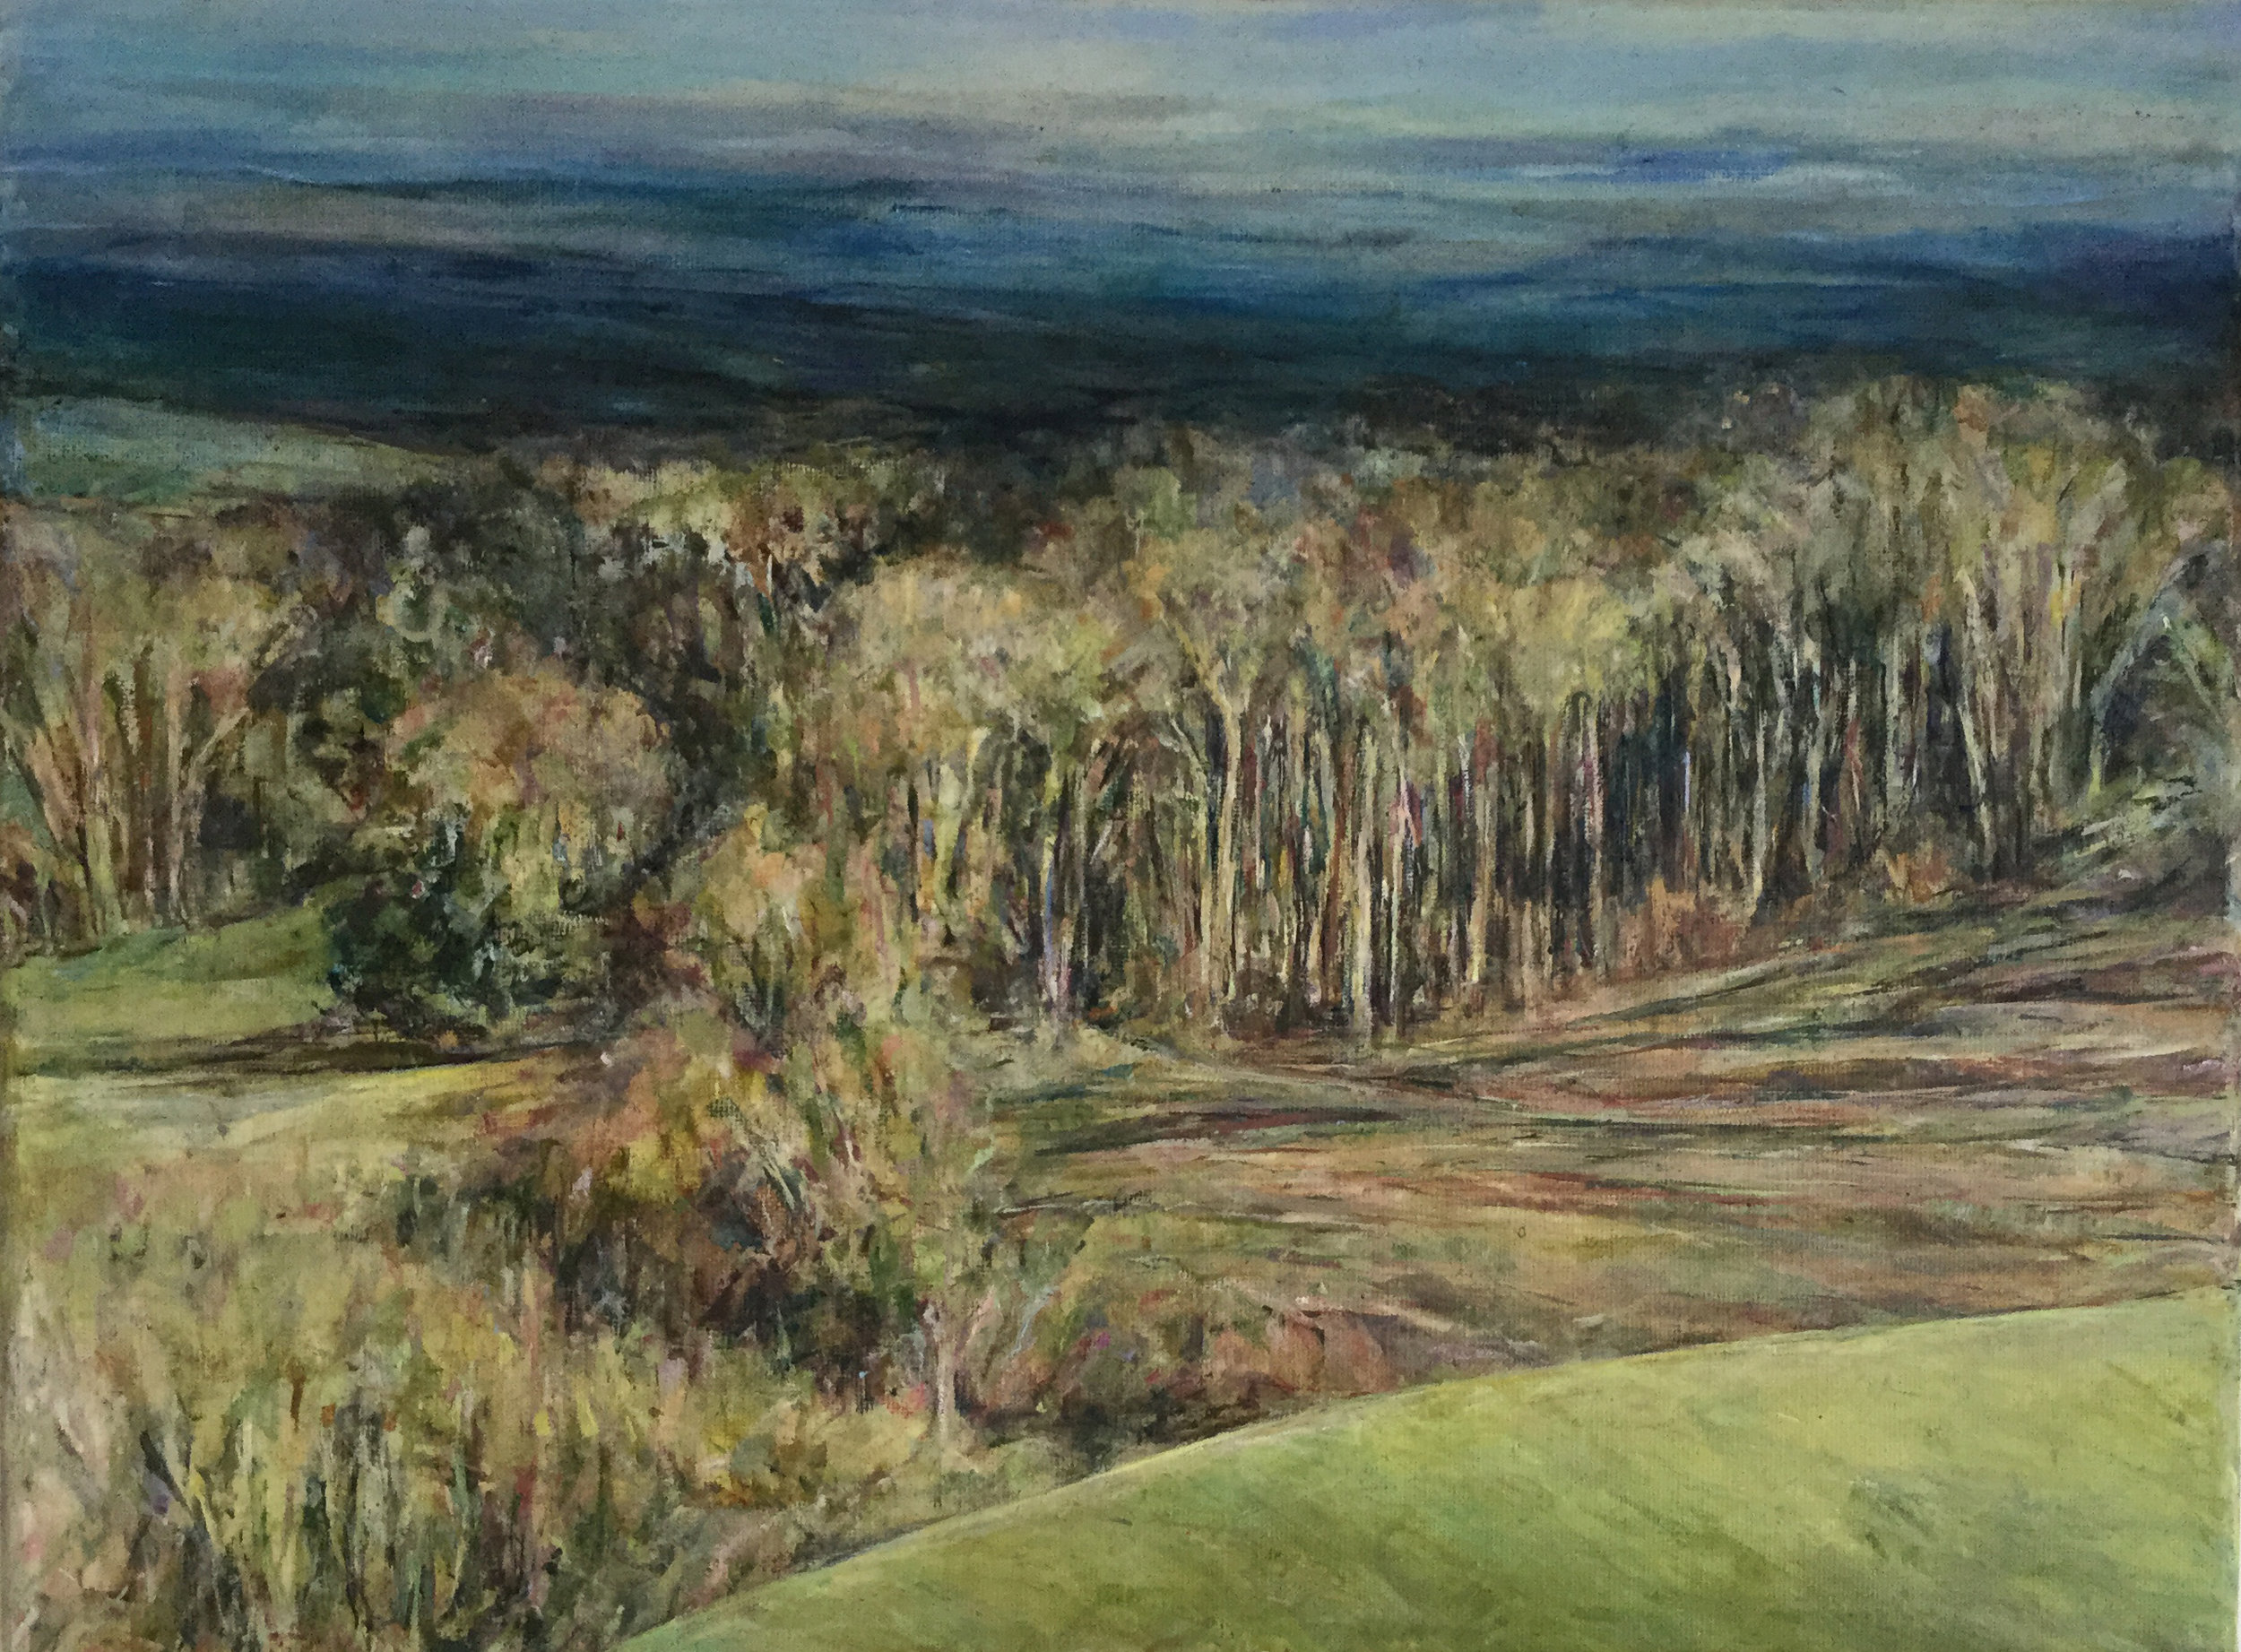 North and Newtimber Hills - Oil pastel and acrylic paint on canvas30cm x 40cm£450 unframed